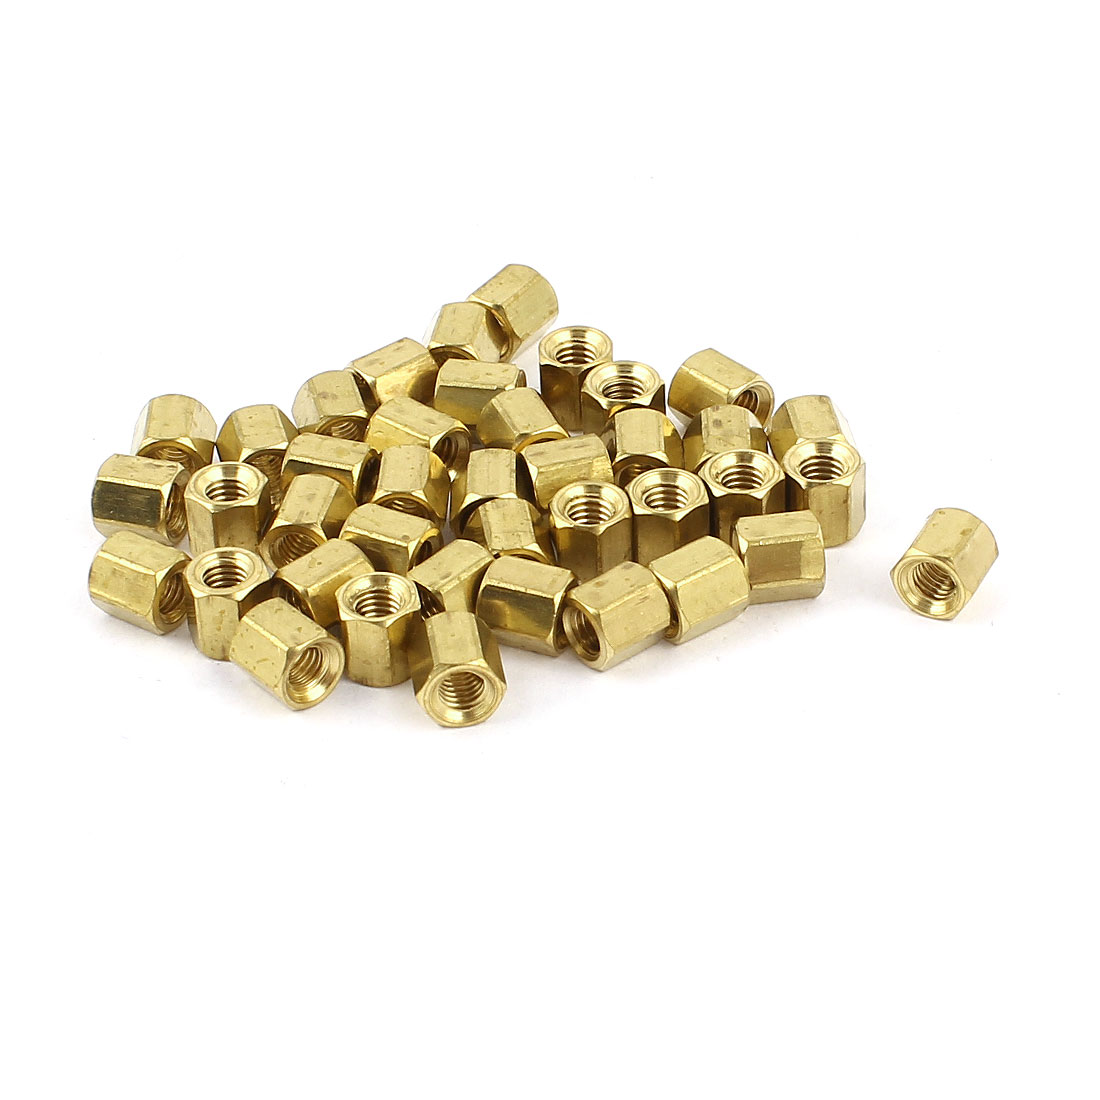 40Pcs M3 Female 5mm Long Hexagonal Standoff Spacer Gold Tone